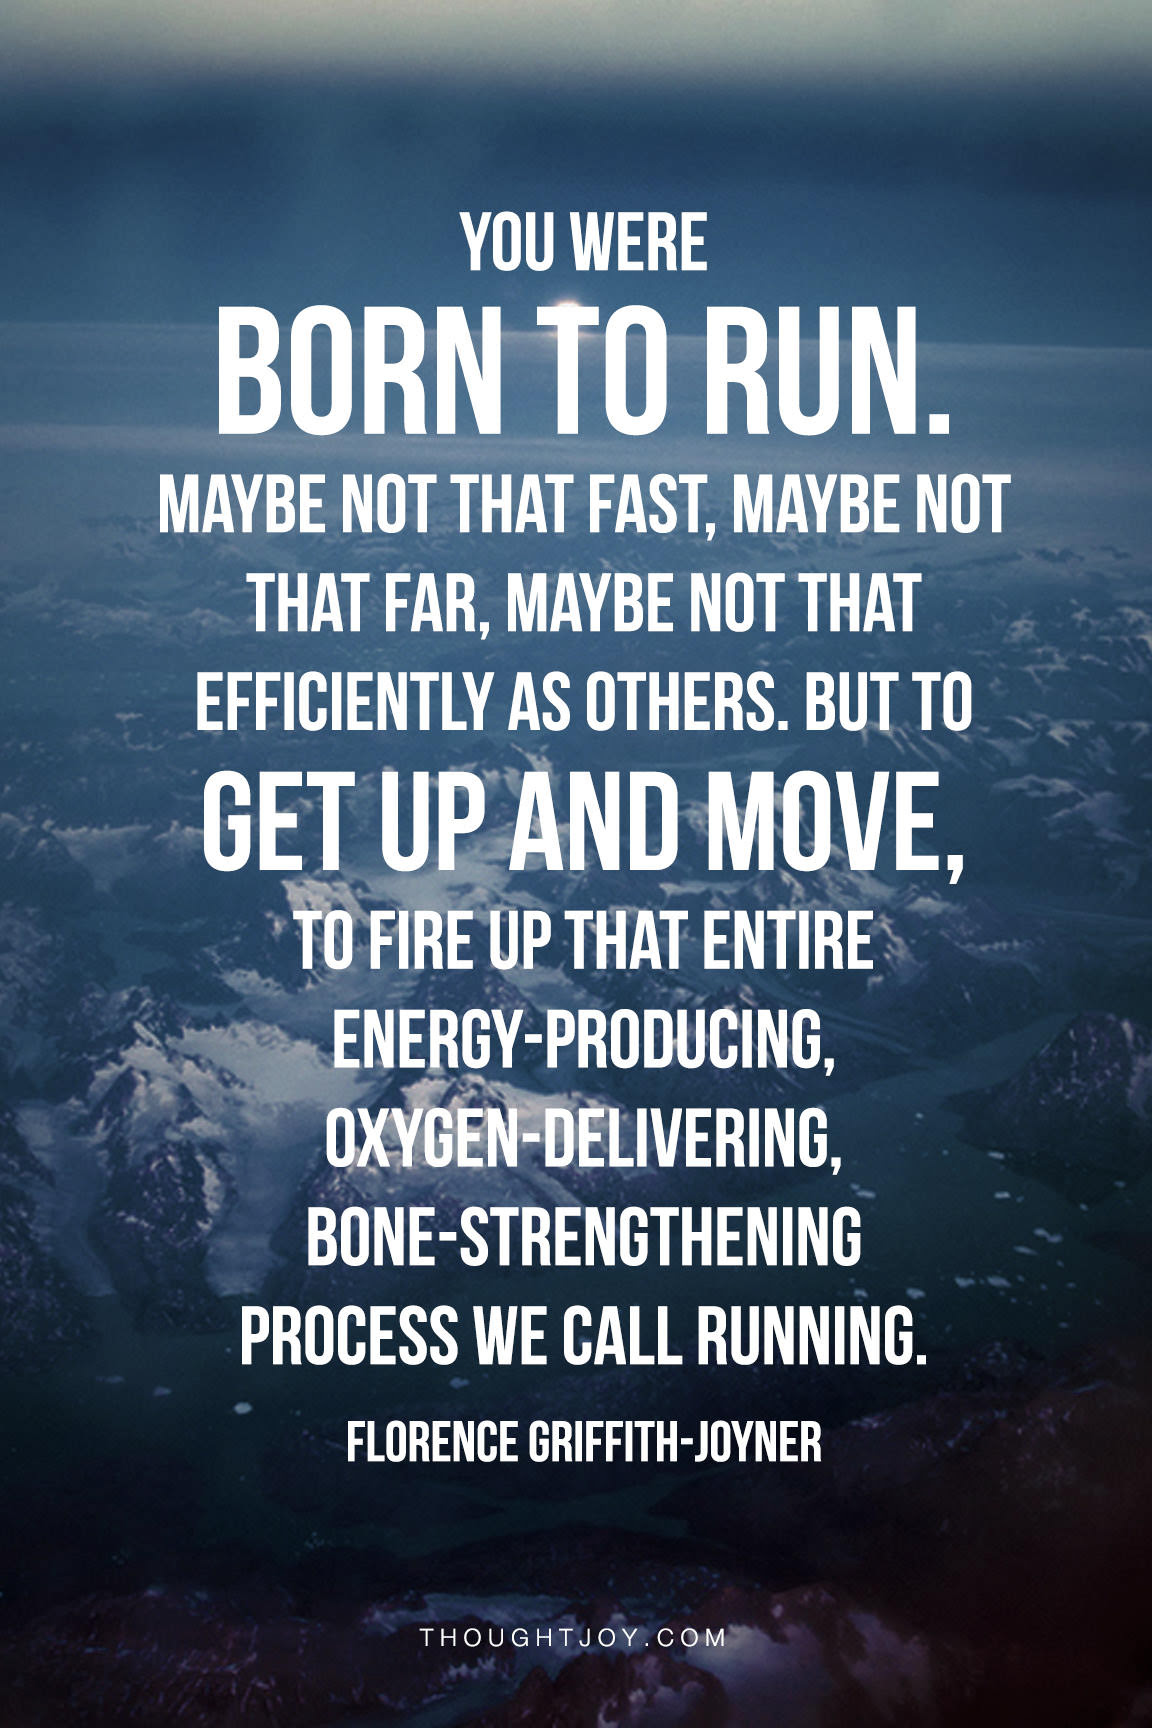 Runner Things 1324: You were born to run. Maybe not that